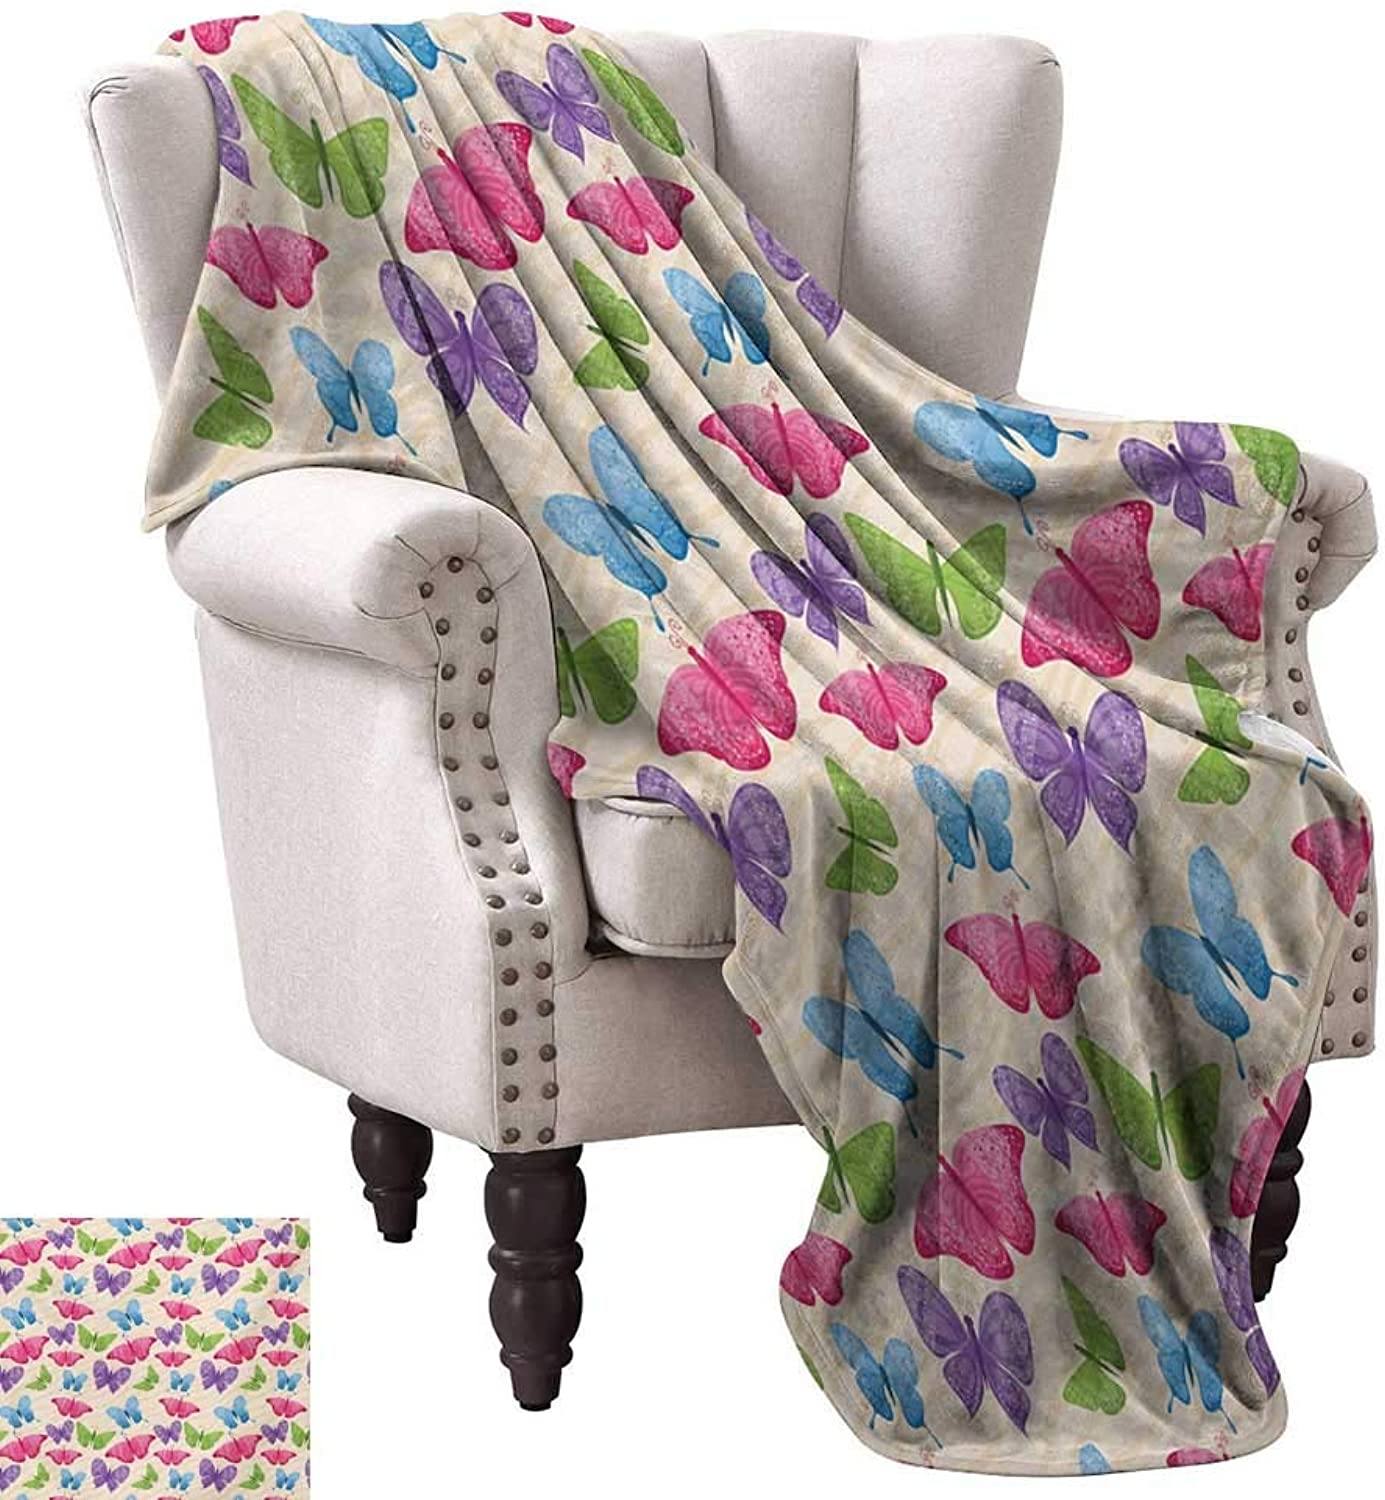 Anyangeight Warm Microfiber All Season Blanket,Cute colorful Butterflies in Vibrant Tones Mothes Spiritual Wings Kids Girls Design 60 x50 ,Super Soft and Comfortable,Suitable for Sofas,Chairs,beds